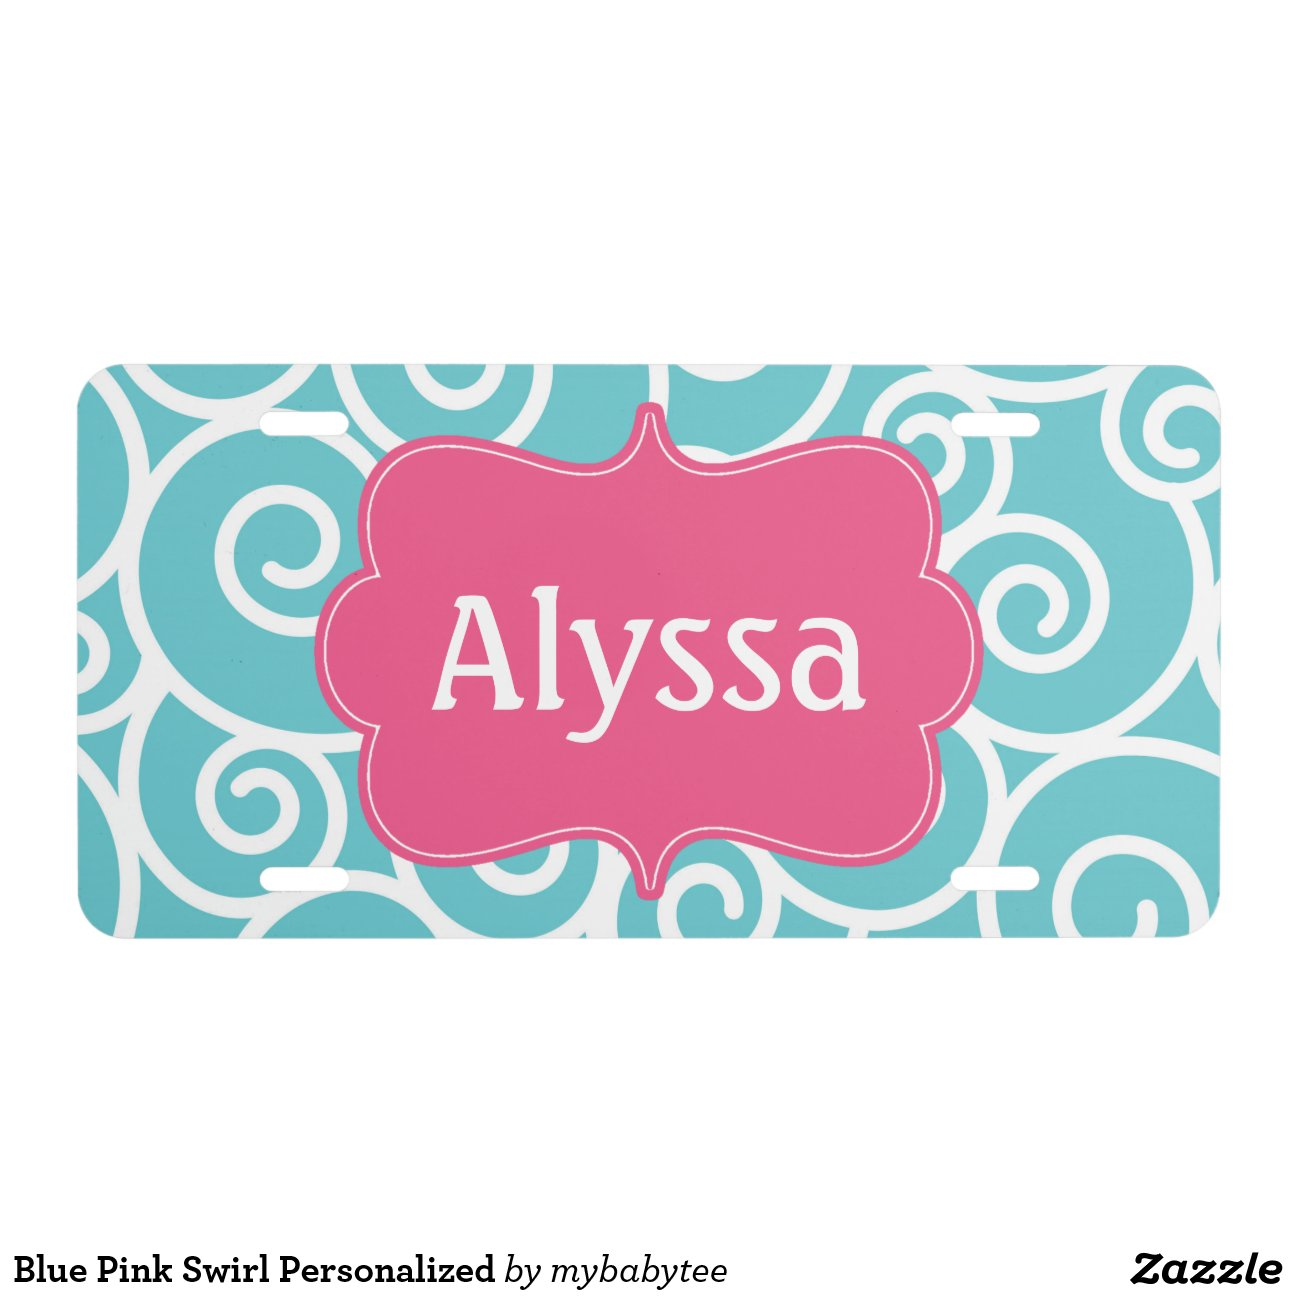 blue_pink_swirl_personalized_license_plate ...